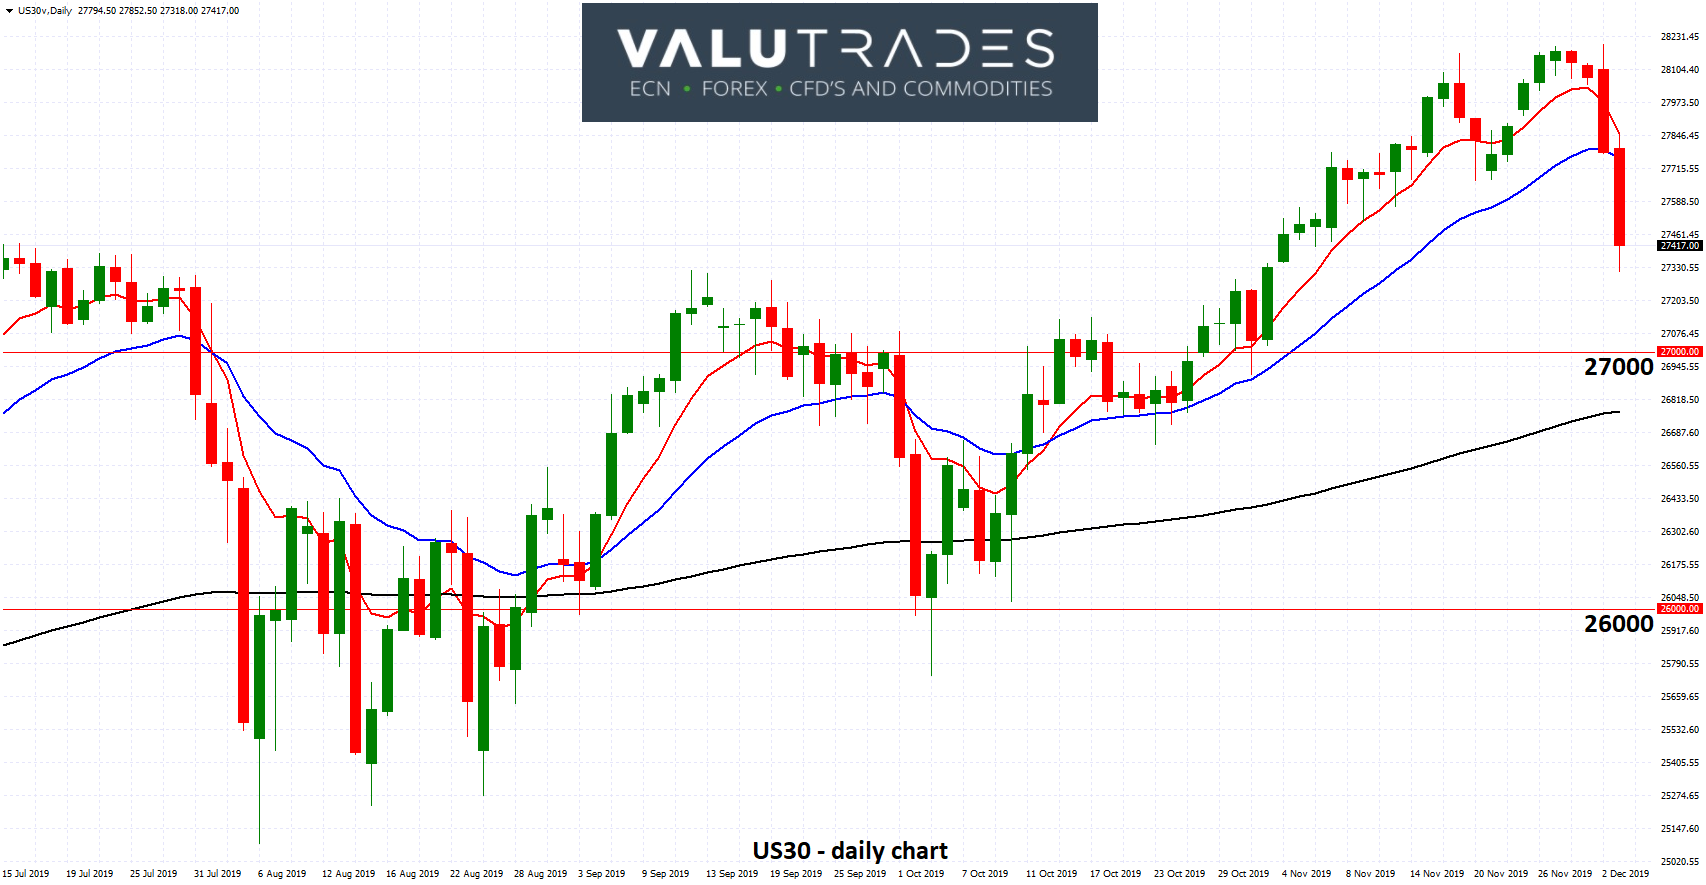 US30 - Drops Sharply from above 28000 on Trump Comments and Weak Data